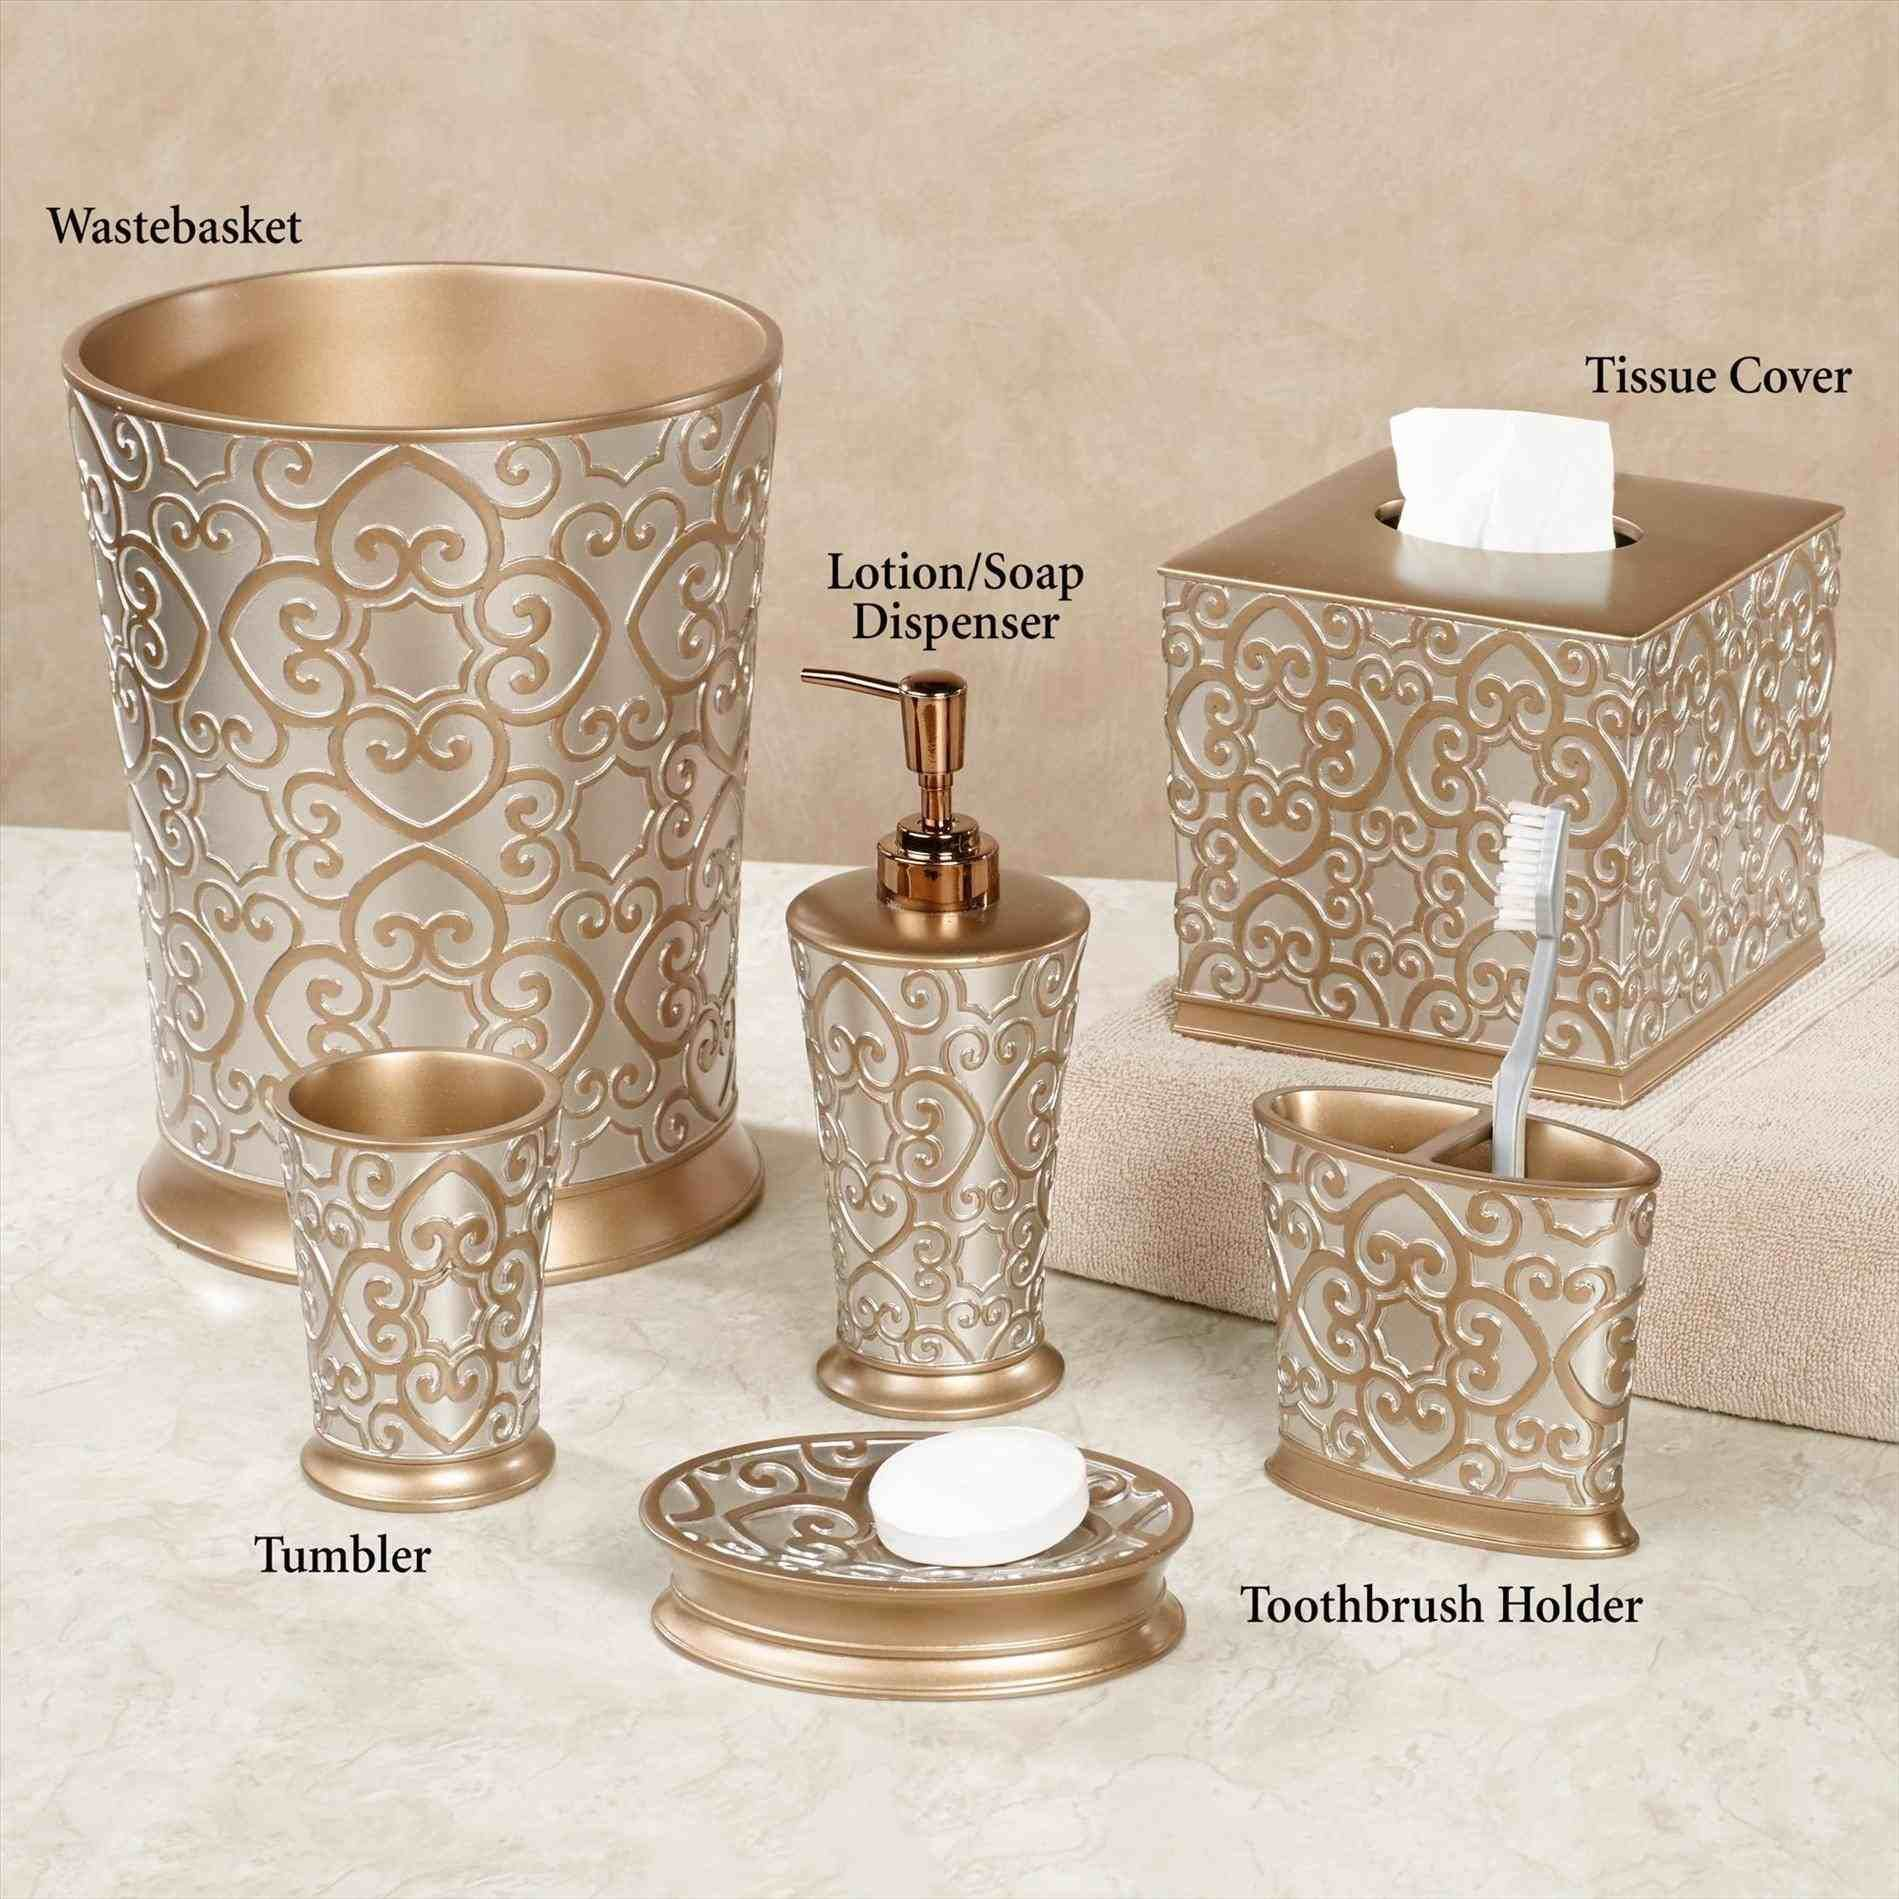 silver crackle bathroom accessories. New Post Silver Crackle Bathroom Accessories Visit Gold Crackle Bathroom Accessories  Gold Glass